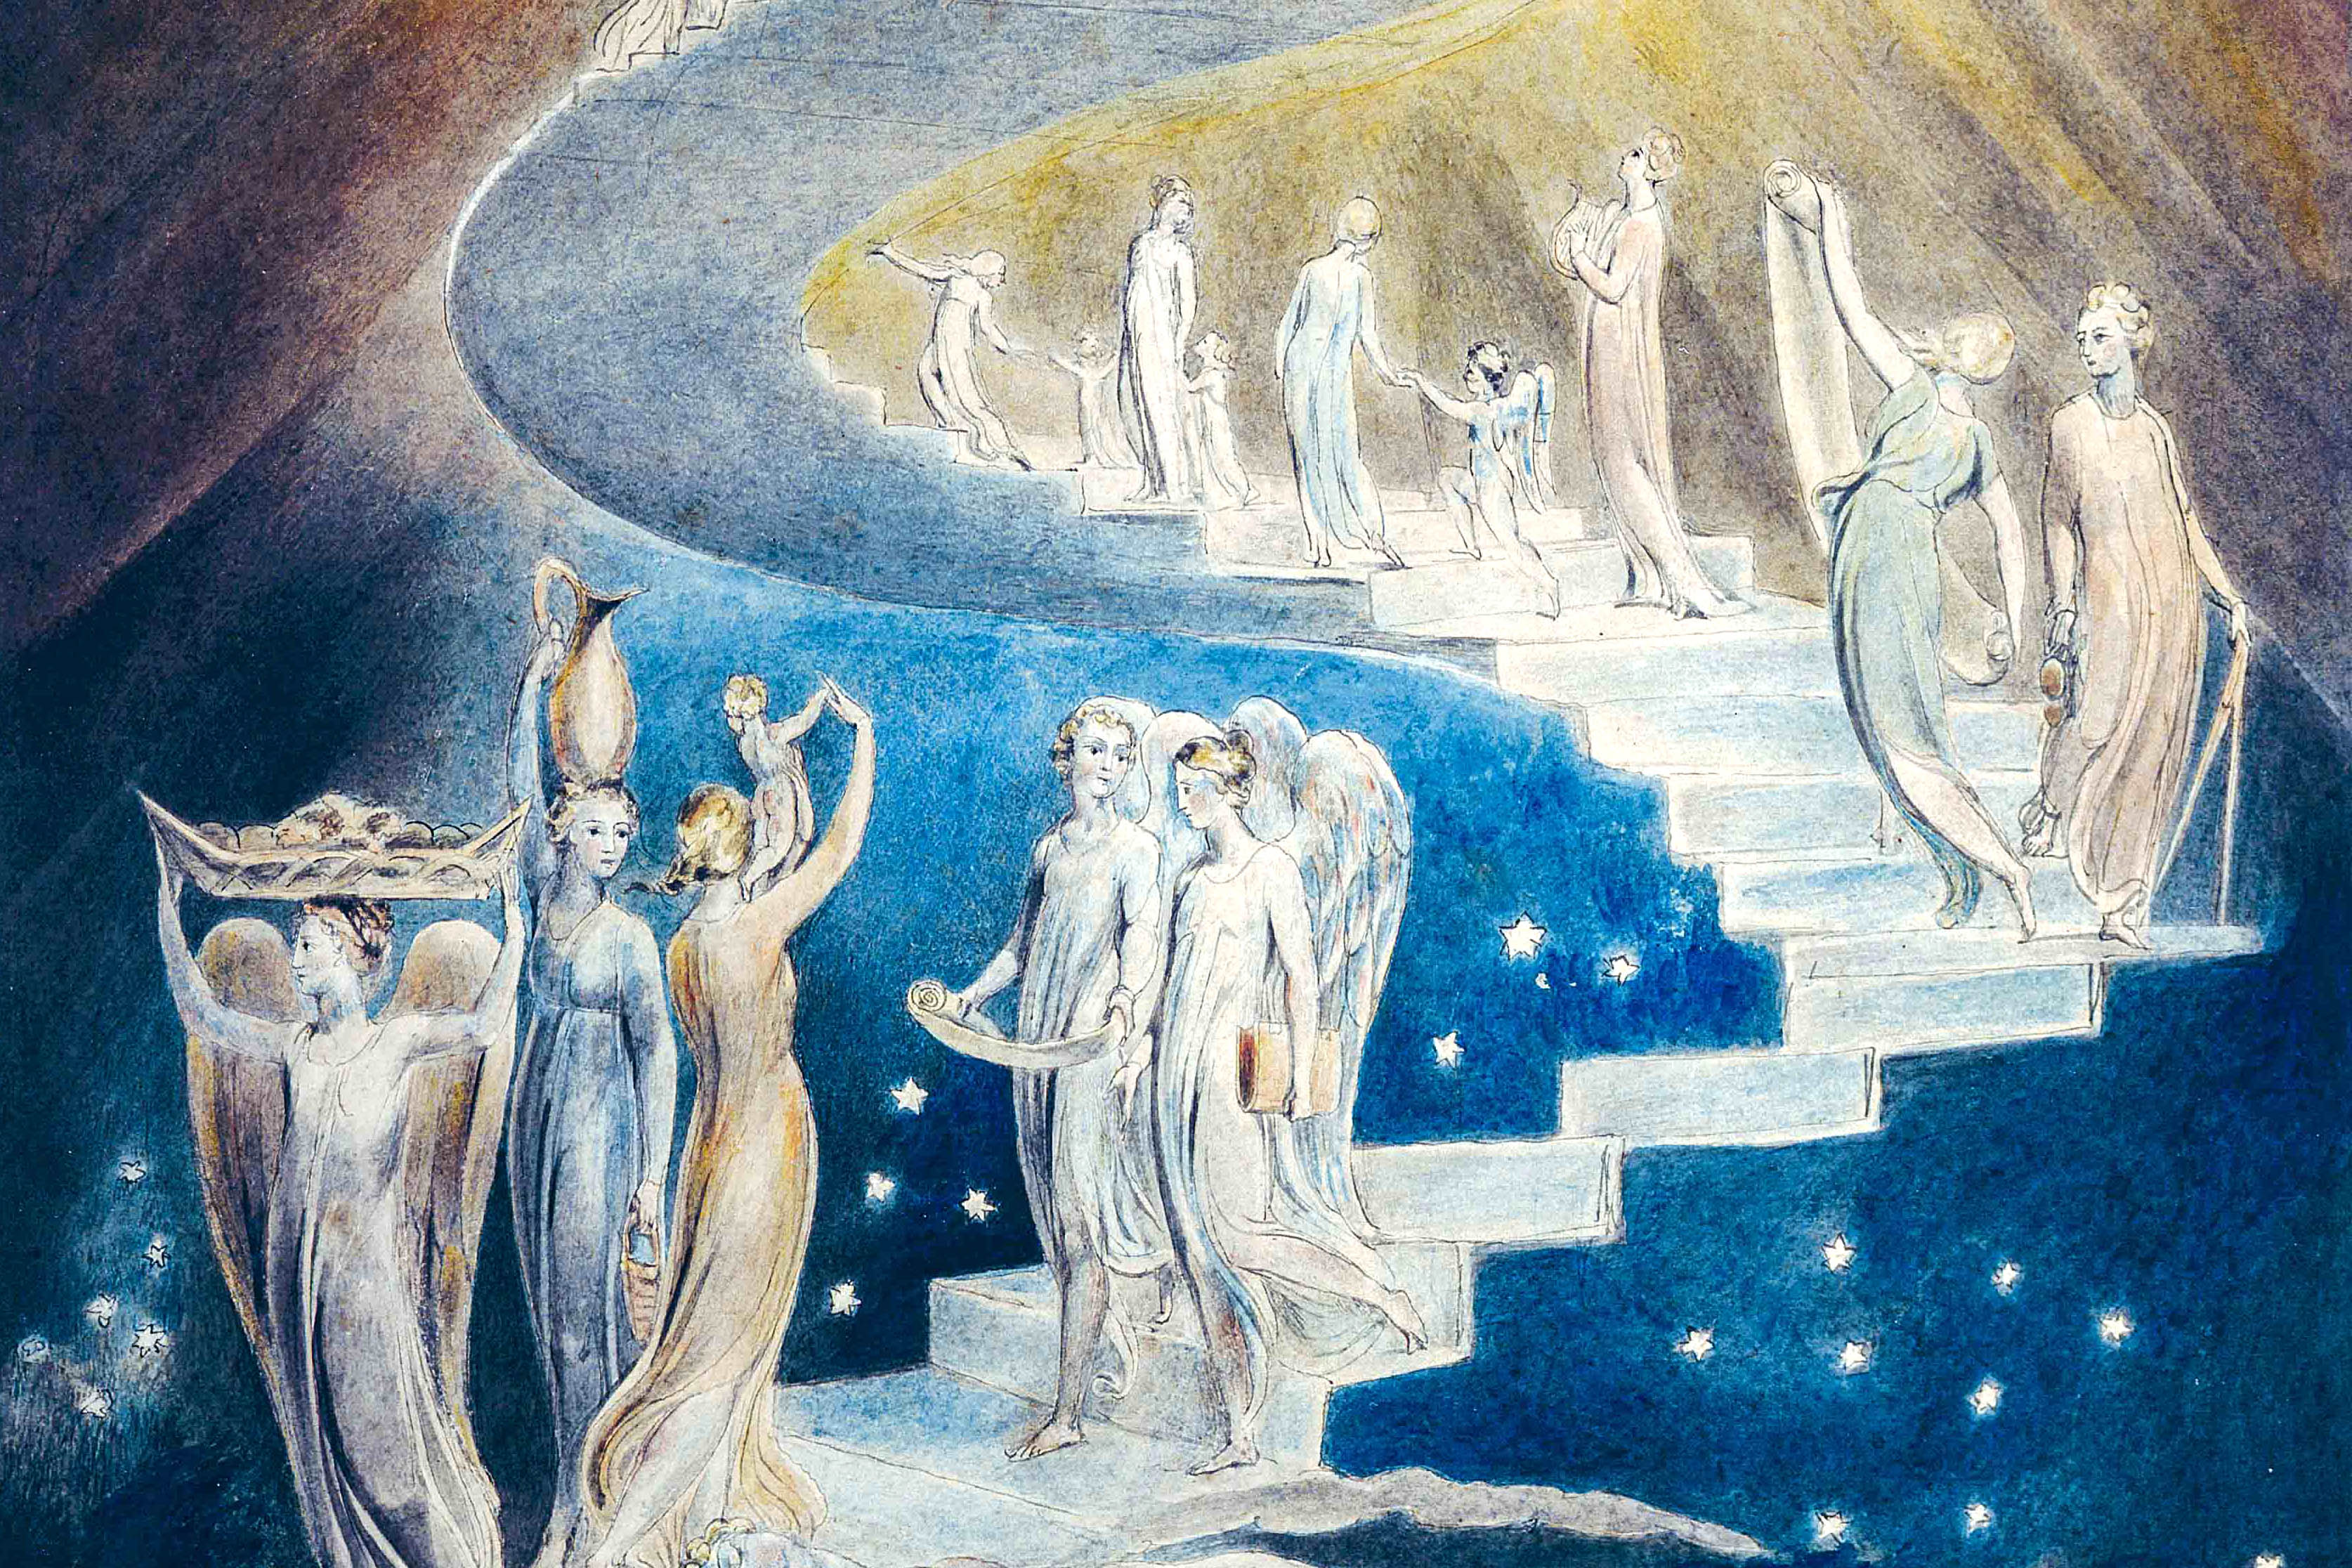 An image of William Blake's Jacob's Ladder, depicts a ladder leading to heaven that was featured in a dream Jacob had during his flight from his brother Esau in the Book of Genesis. Local academic Dr Philippa Martyr has last week spoken on dreaming from a neurological, psychological and Christian spiritual perspective. Photo: Wikipedia.